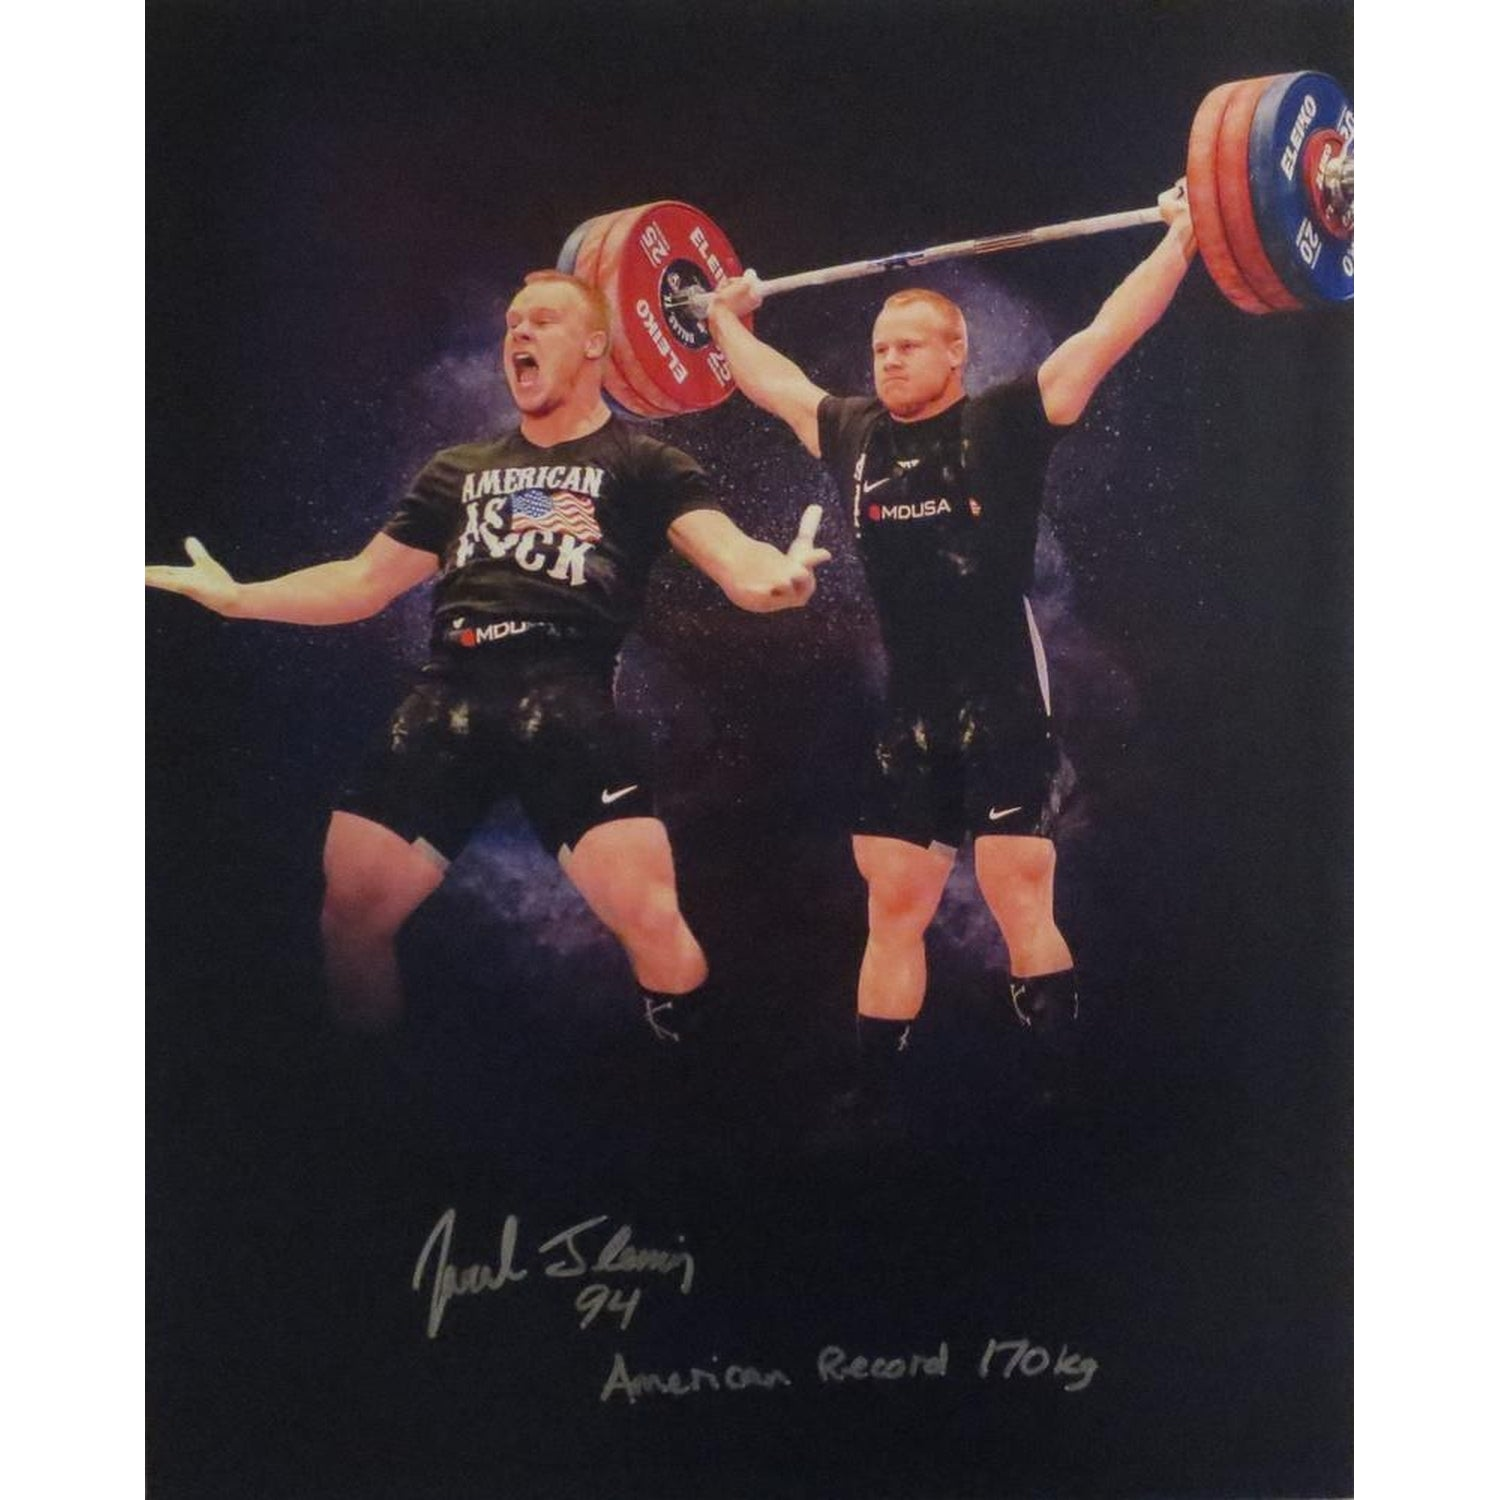 Jared Fleming Autographed USA Weightlifting American Record 170 Snatch Signed 16x20 Photo 6 Photo-Powers Sports Memorabilia